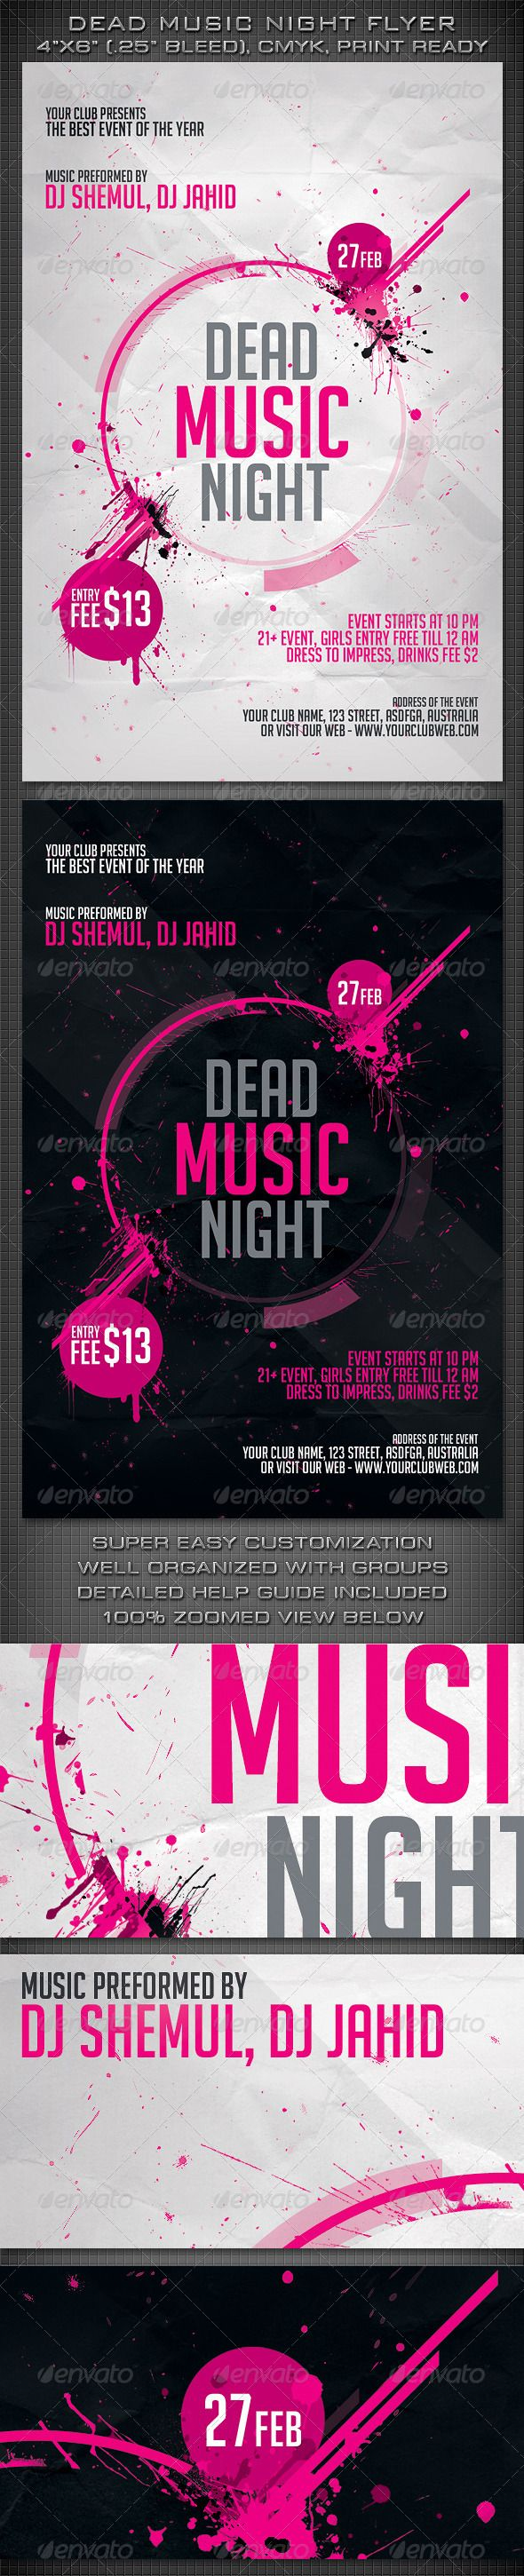 Dead Music Night Flyer - Clubs & Parties Events